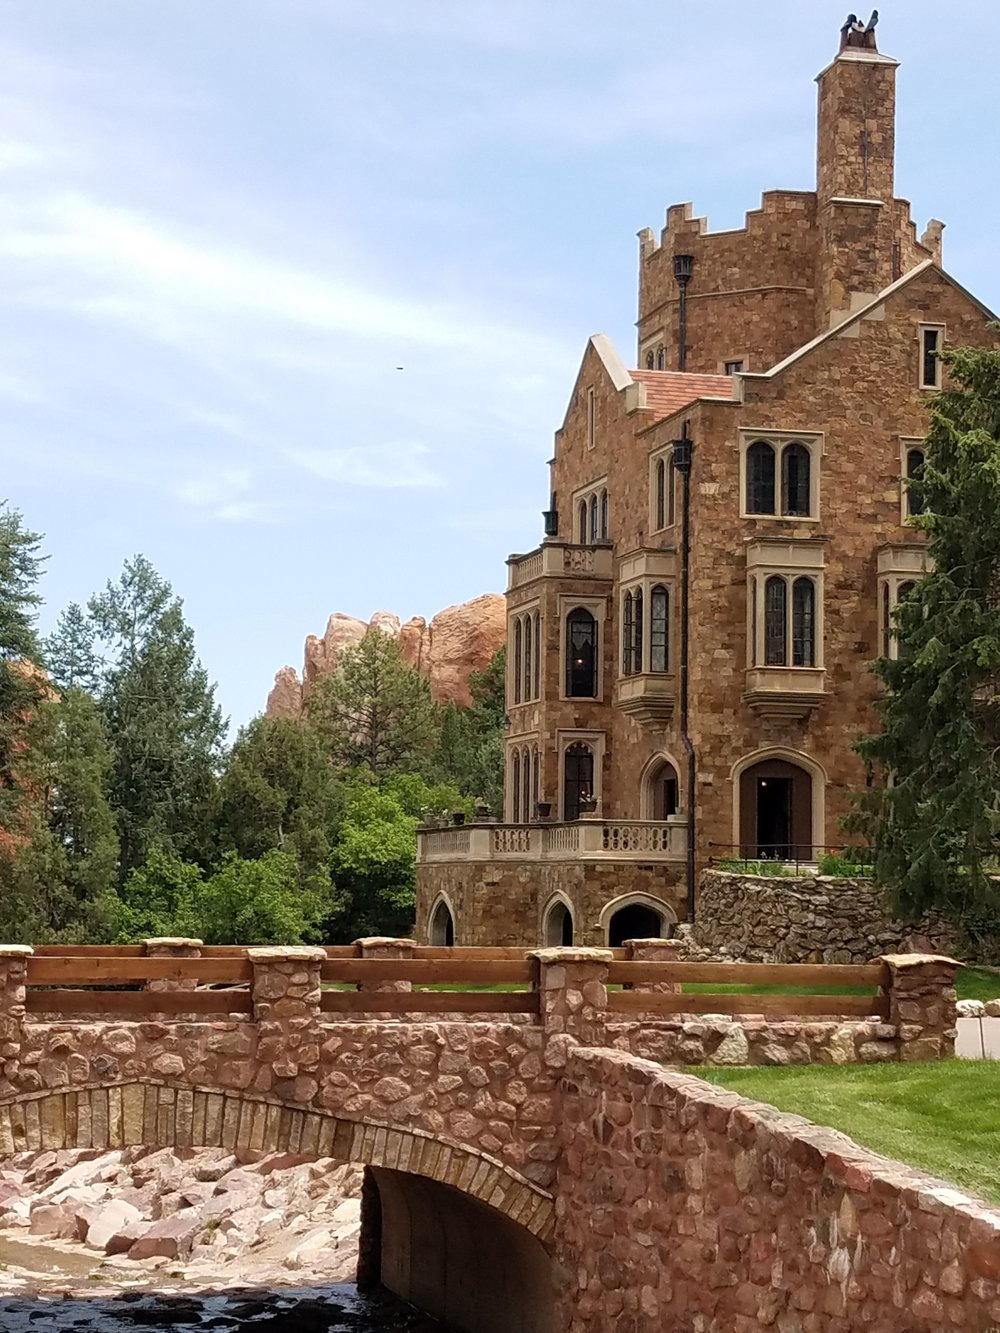 Nov. 4-5, 2017Devoted Dreamers Retreat - Glen Eyrie Conference Center, Colorado Springs